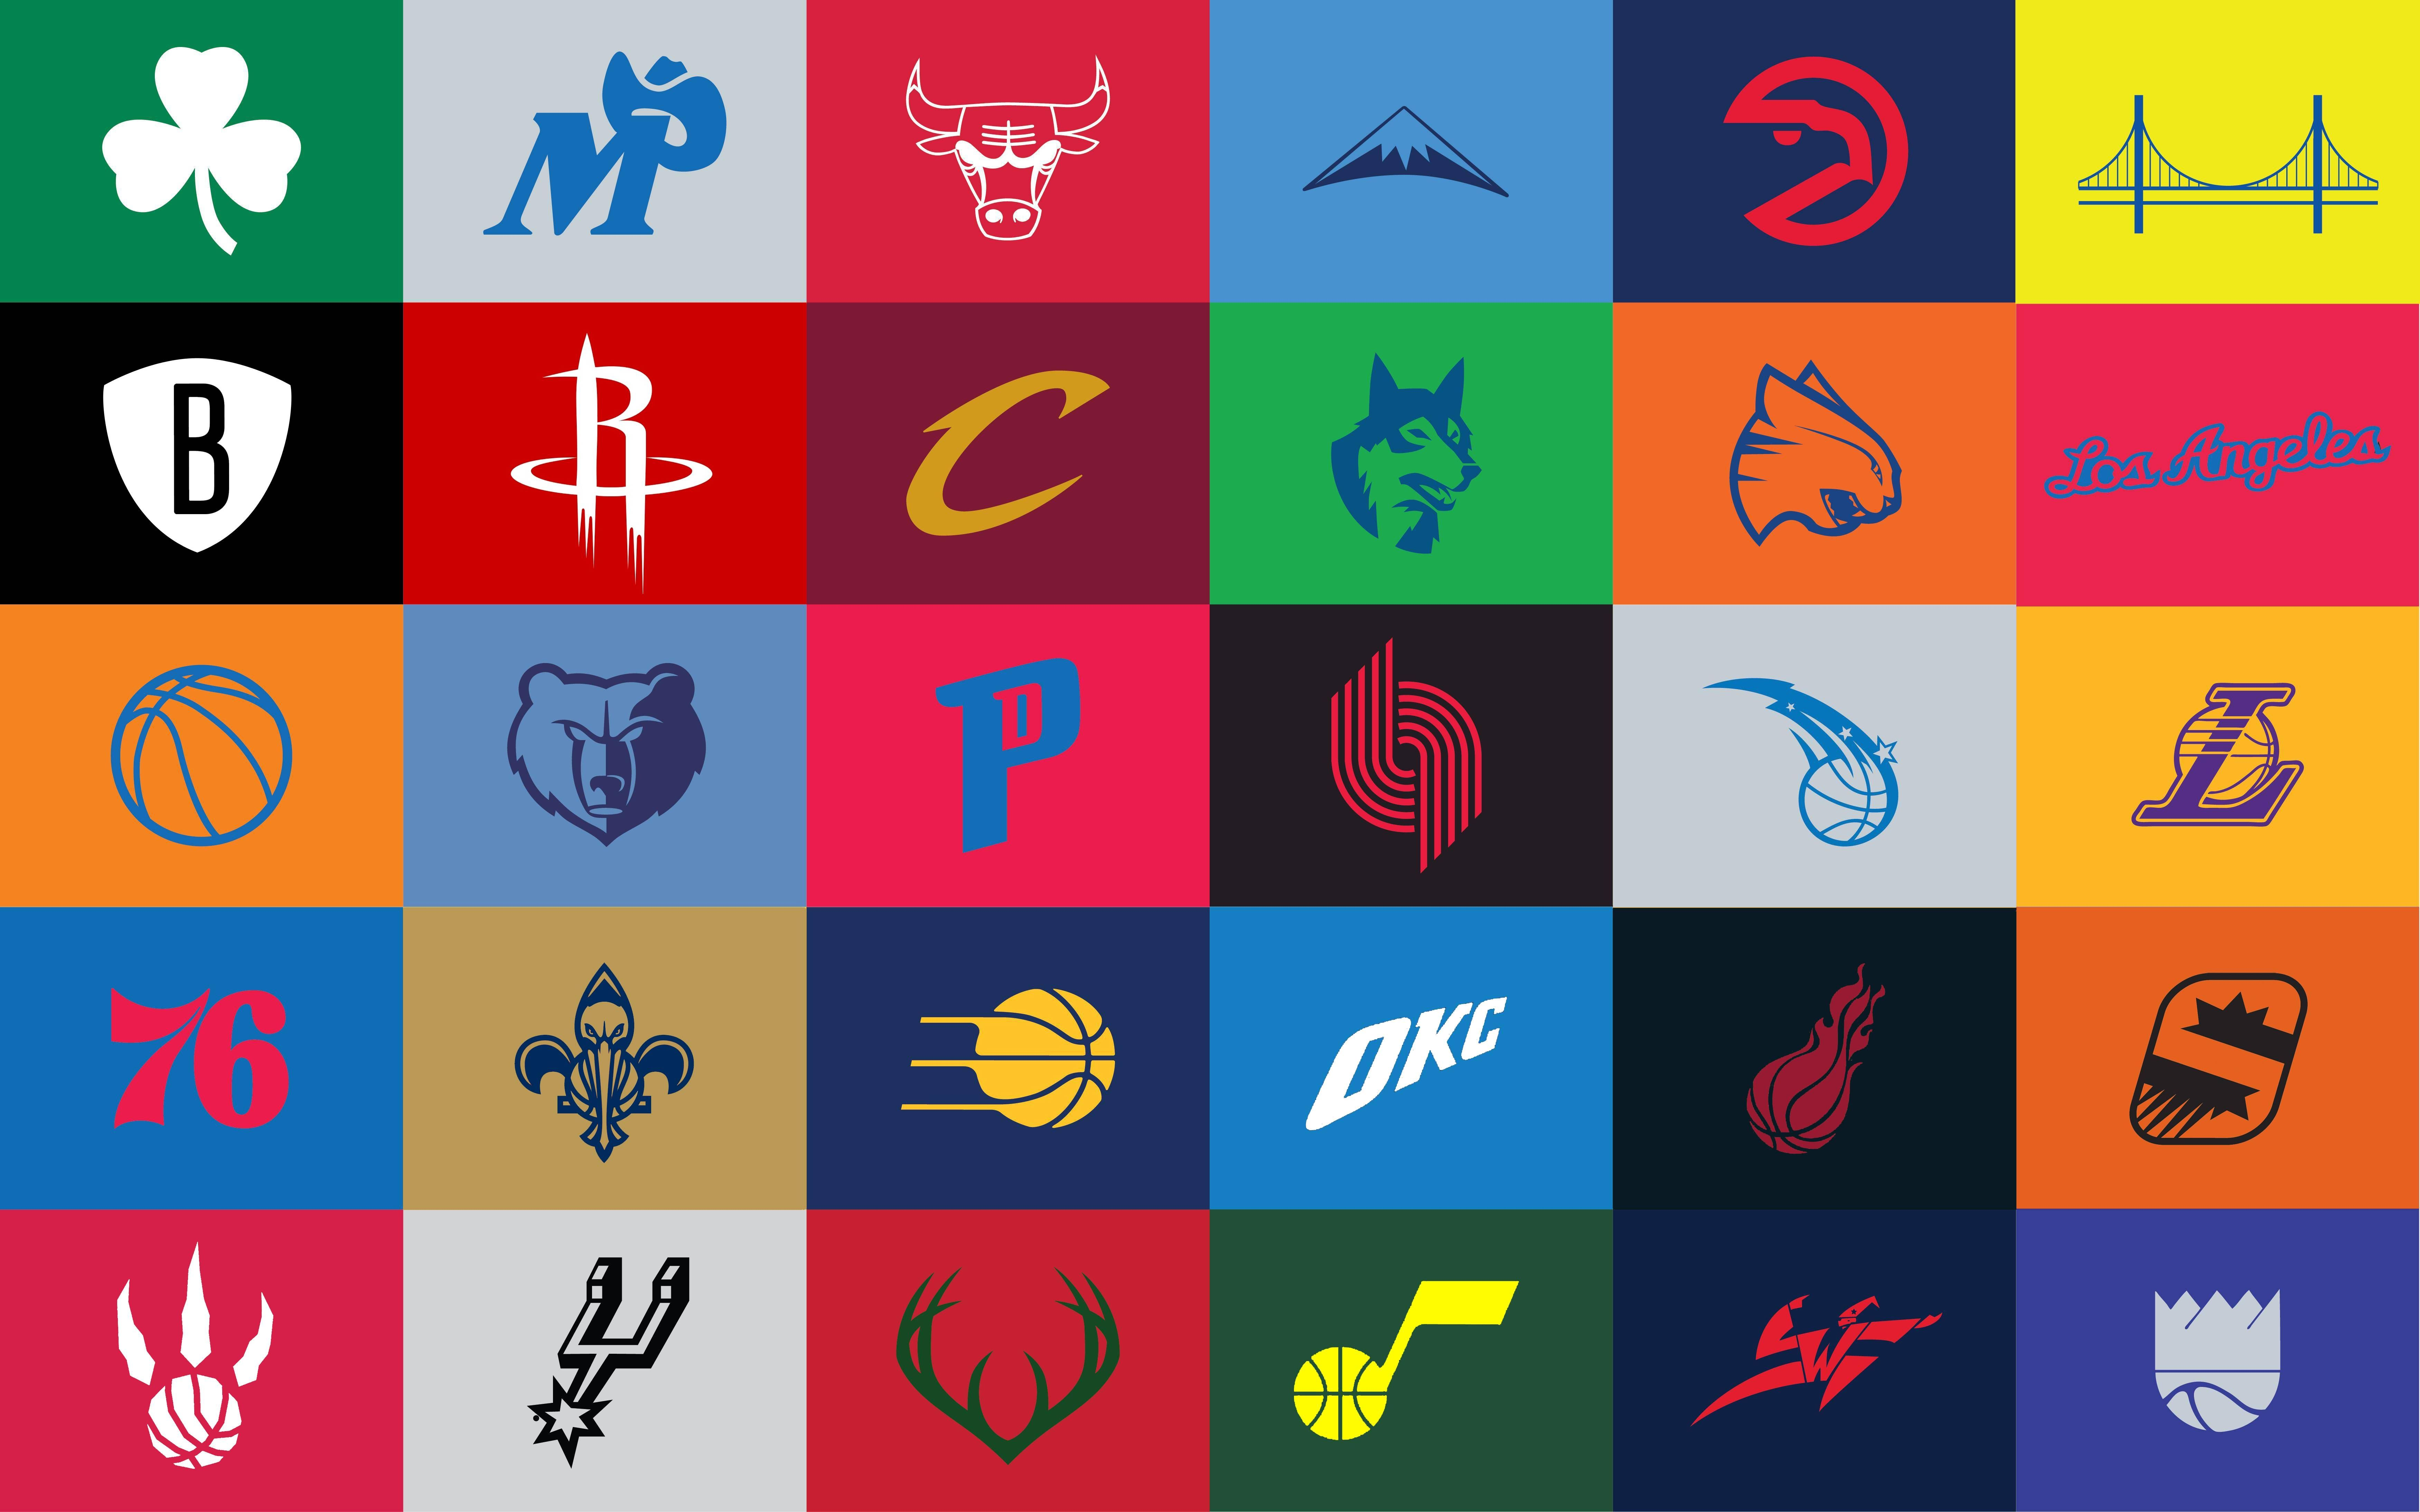 I Made A Few Adjustments To The Minimalist Nba Logos Wallpaper Made By U Dyoon19452 A Few Months Ago Nba Logo Team Wallpaper Basketball Wallpaper